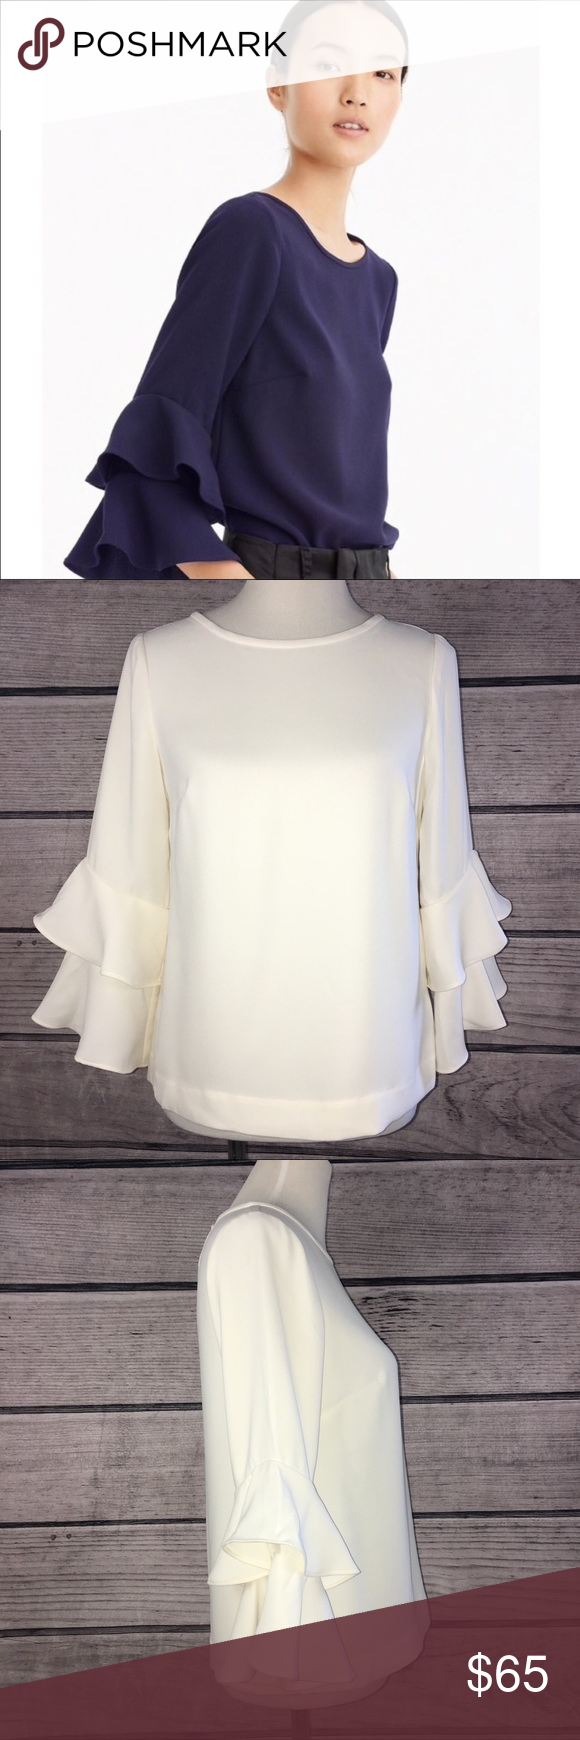 319e481b03c898 J. Crew | NWT Tiered Bell Sleeve Top Ivory 2 New J. Crew tiered belle  sleeve blouse in women's size 2. New with tags Fabric: 100% polyester  Style: H2197 J. ...